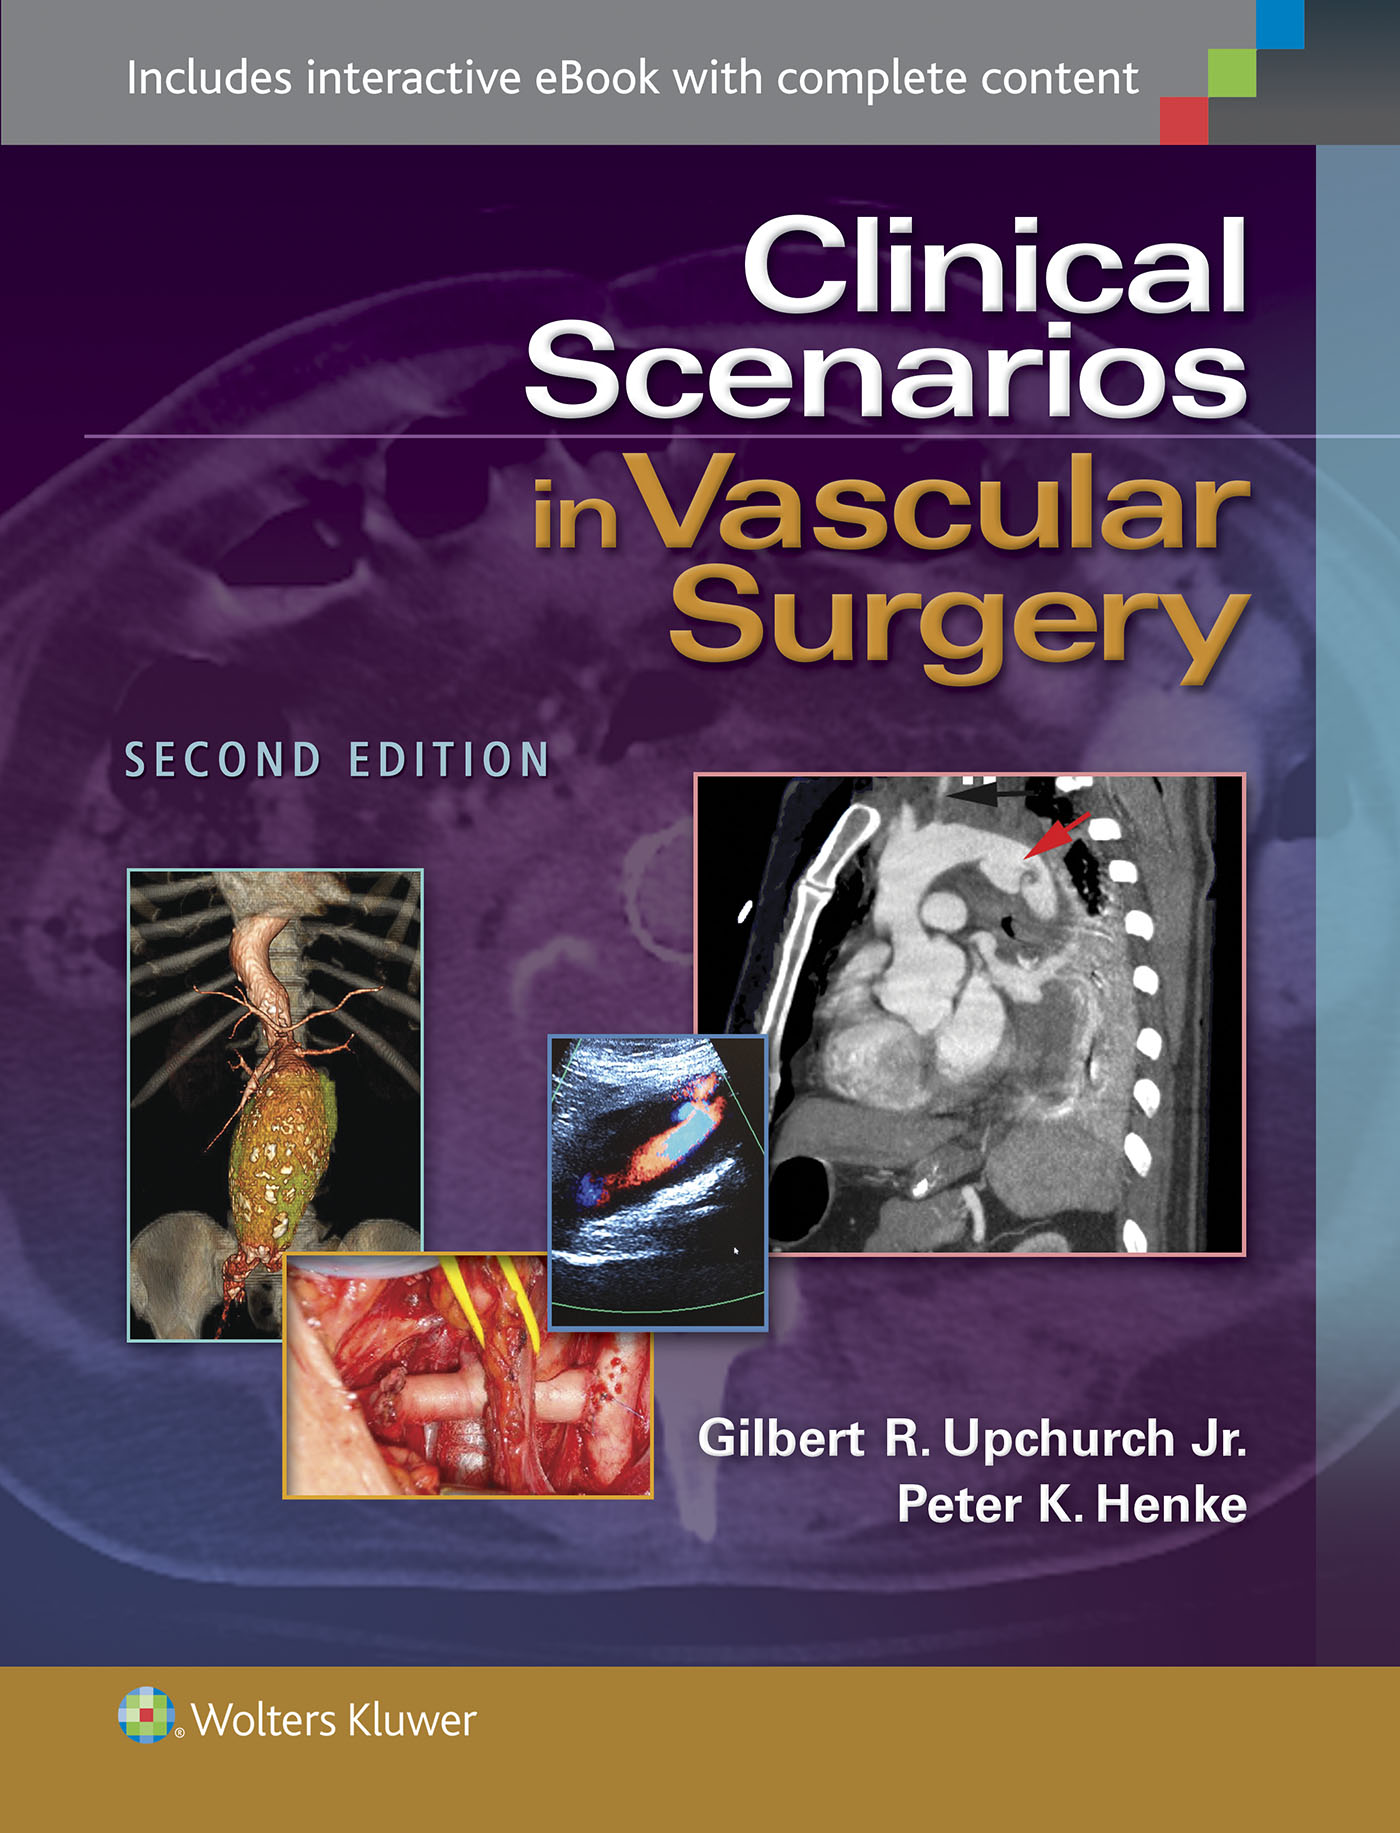 Clinical Scenarios in Vascular Surgery